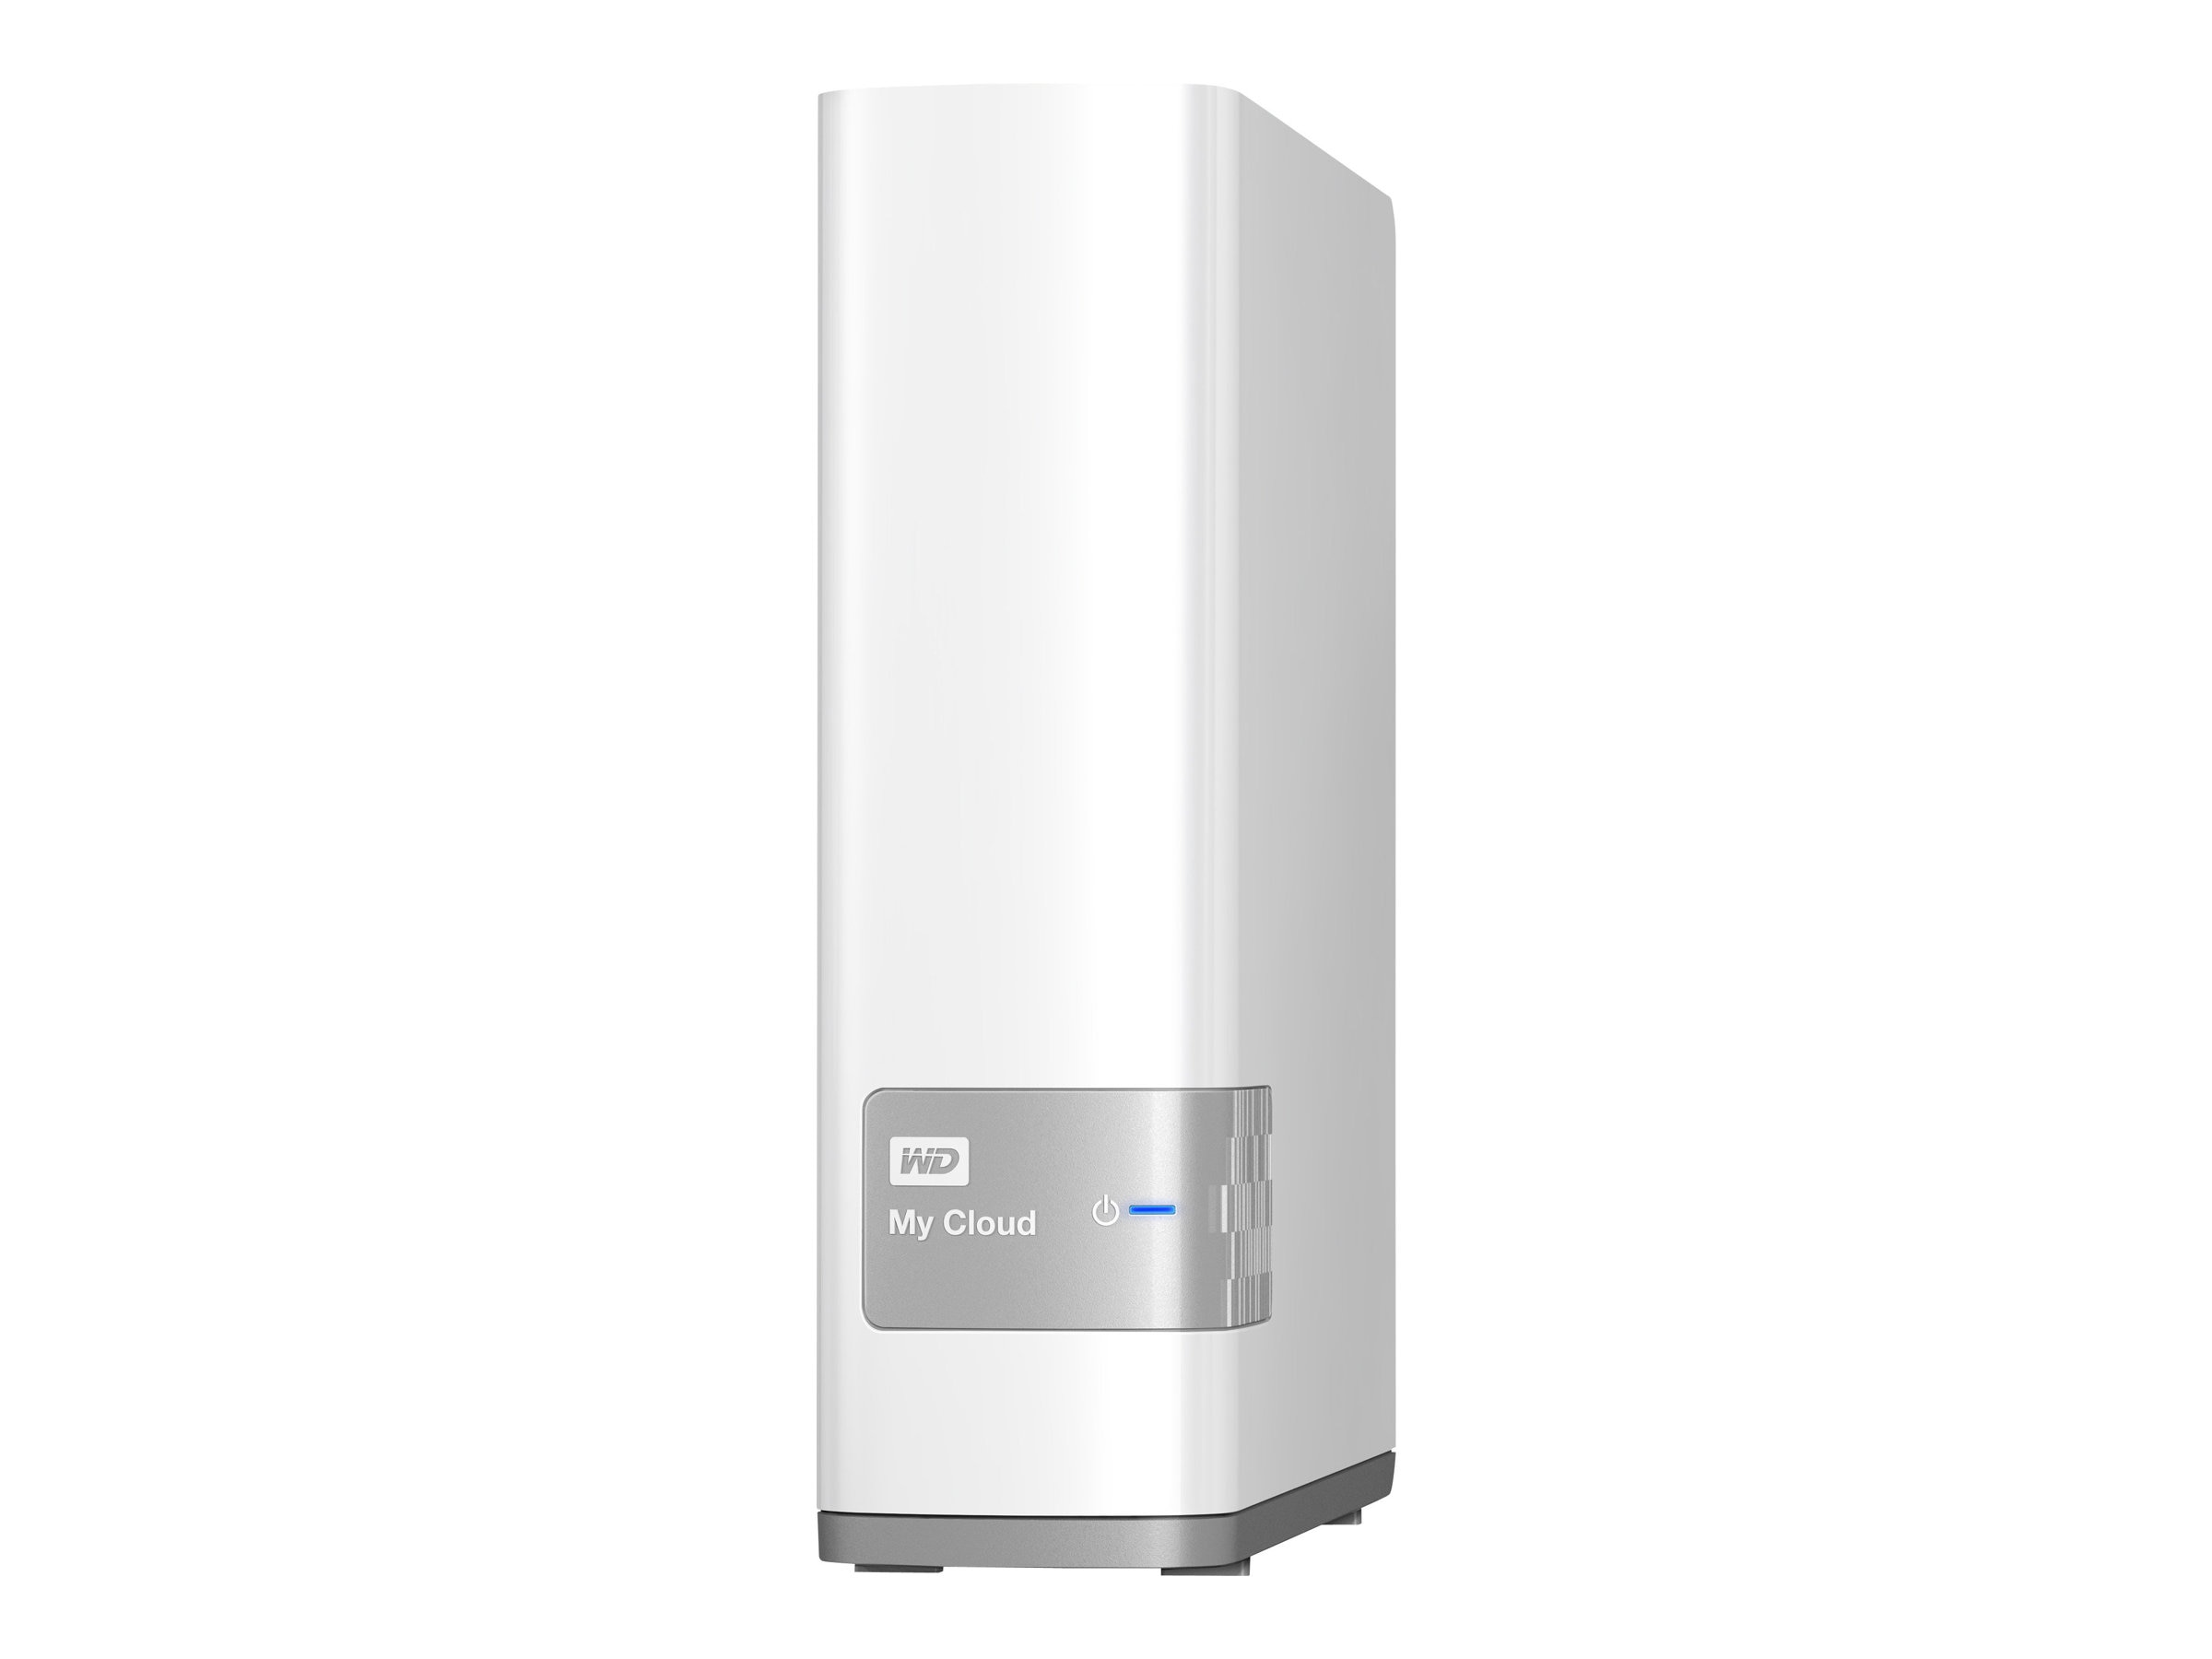 WD 6TB My Cloud Personal Cloud Storage, WDBCTL0060HWT-NESN, 17406672, Network Attached Storage